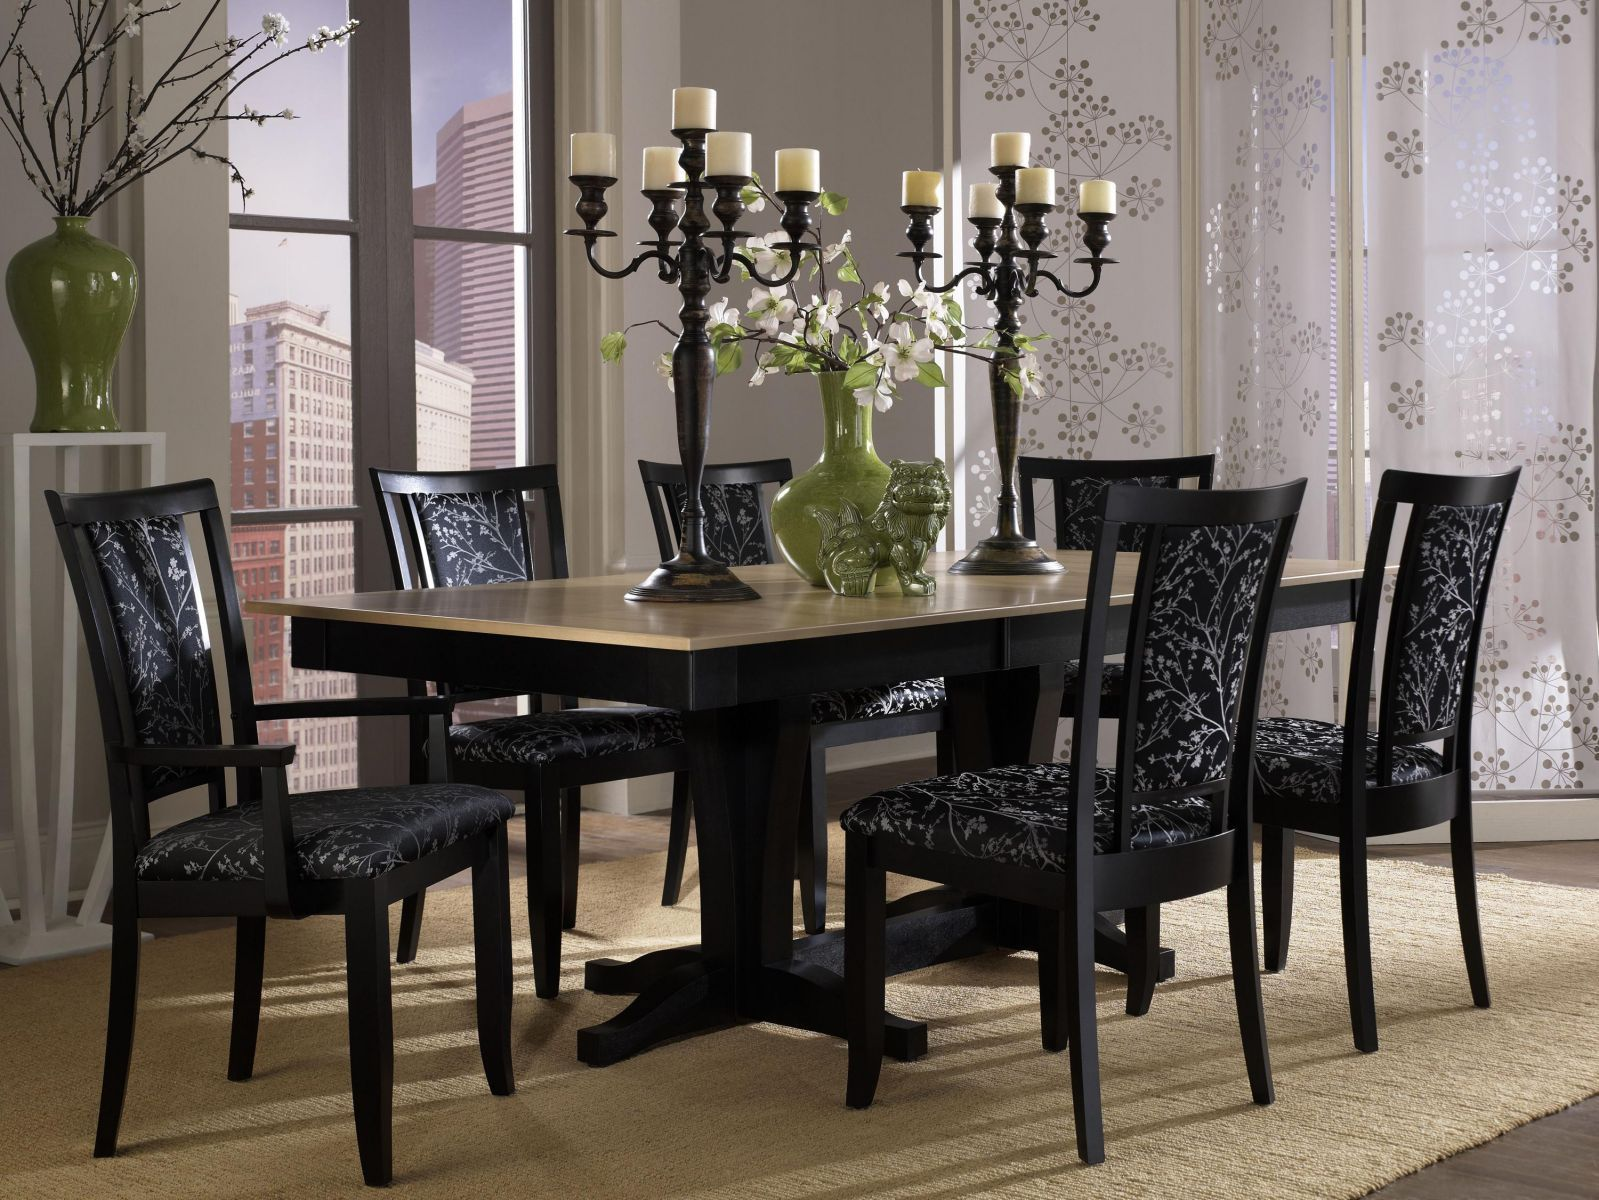 Canadel Dining Room SetCall (631) 742-1351 for Best Price Guarantee Long Island FurnitureDinette Sets New York , Dinette Sets Long Island , Dining Room Sets New York , Dining Room Sets Long Island, Dining Room Chairs Long Island